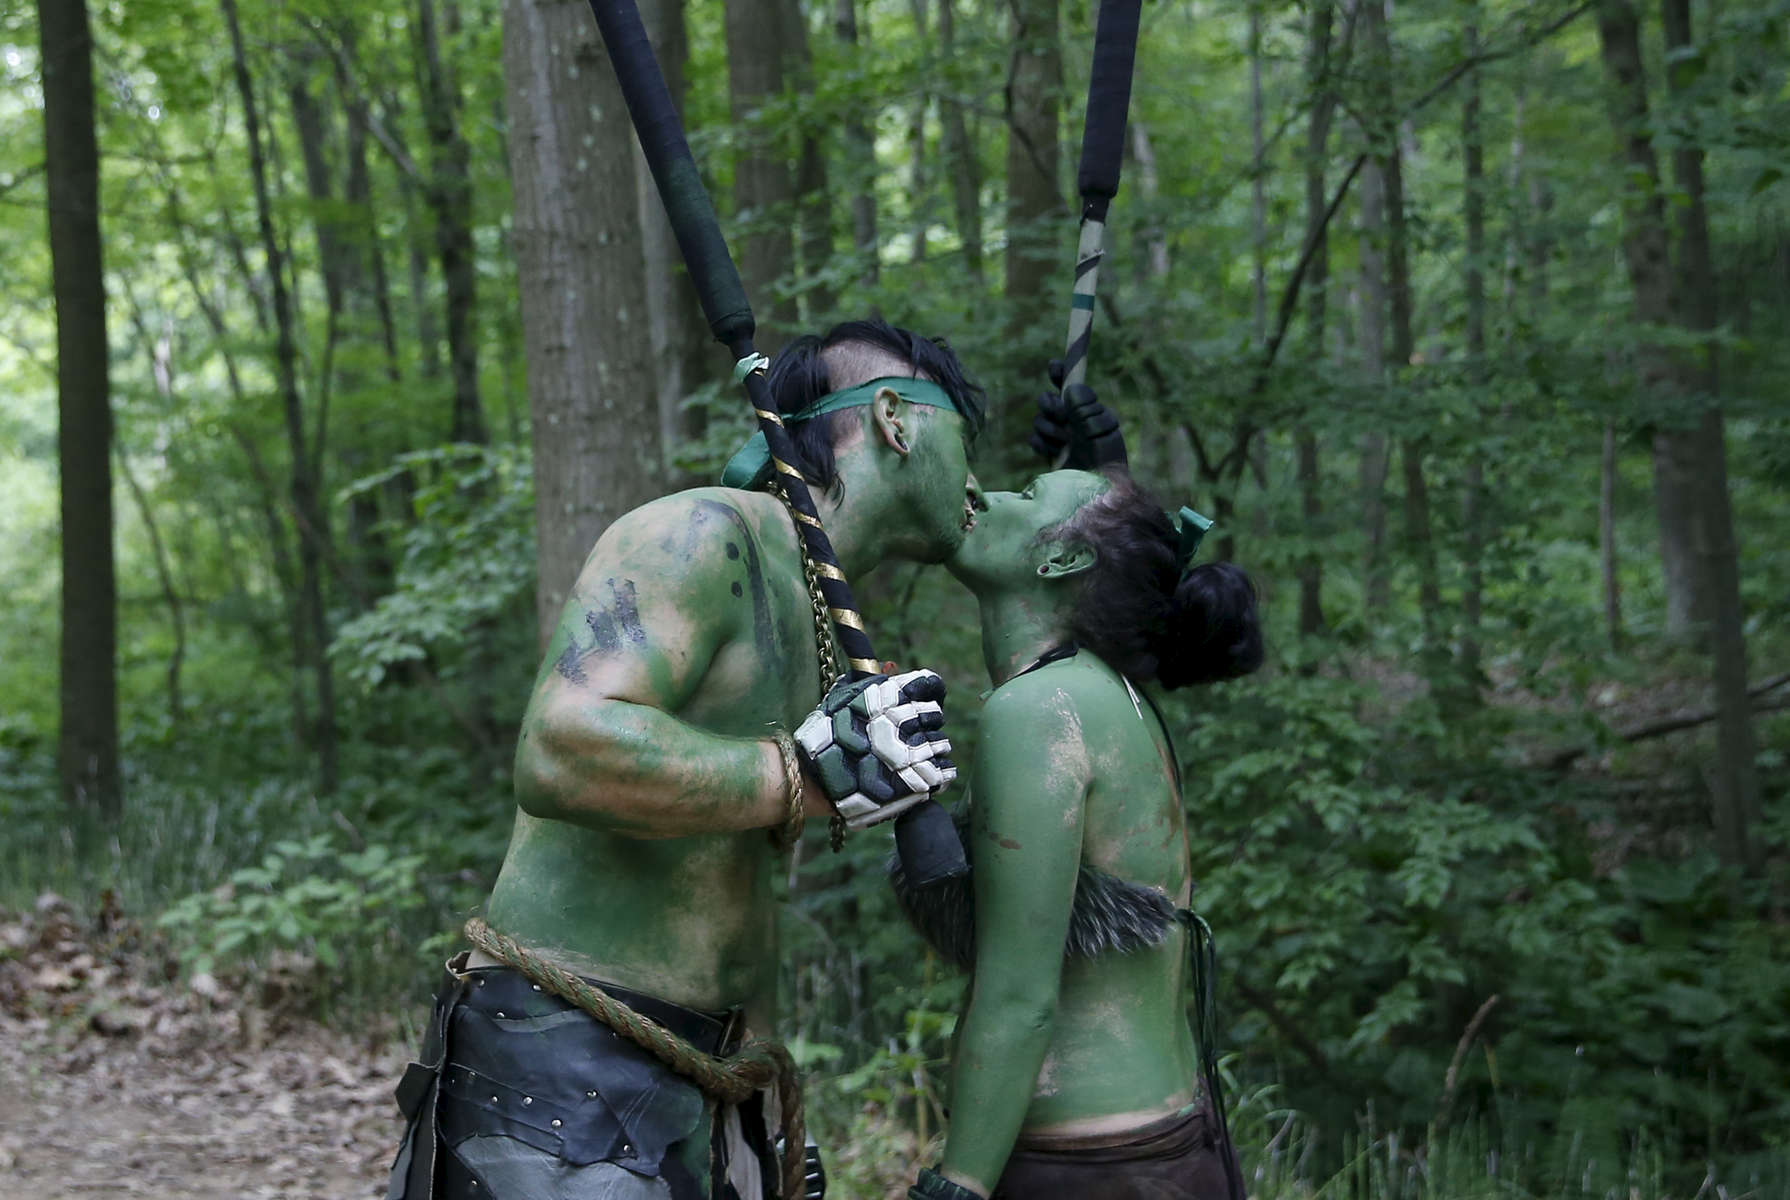 Slippery Rock, PA -- 6/22/2017 -  A couple paused for a kiss as they passed each other during a battle in the woods.